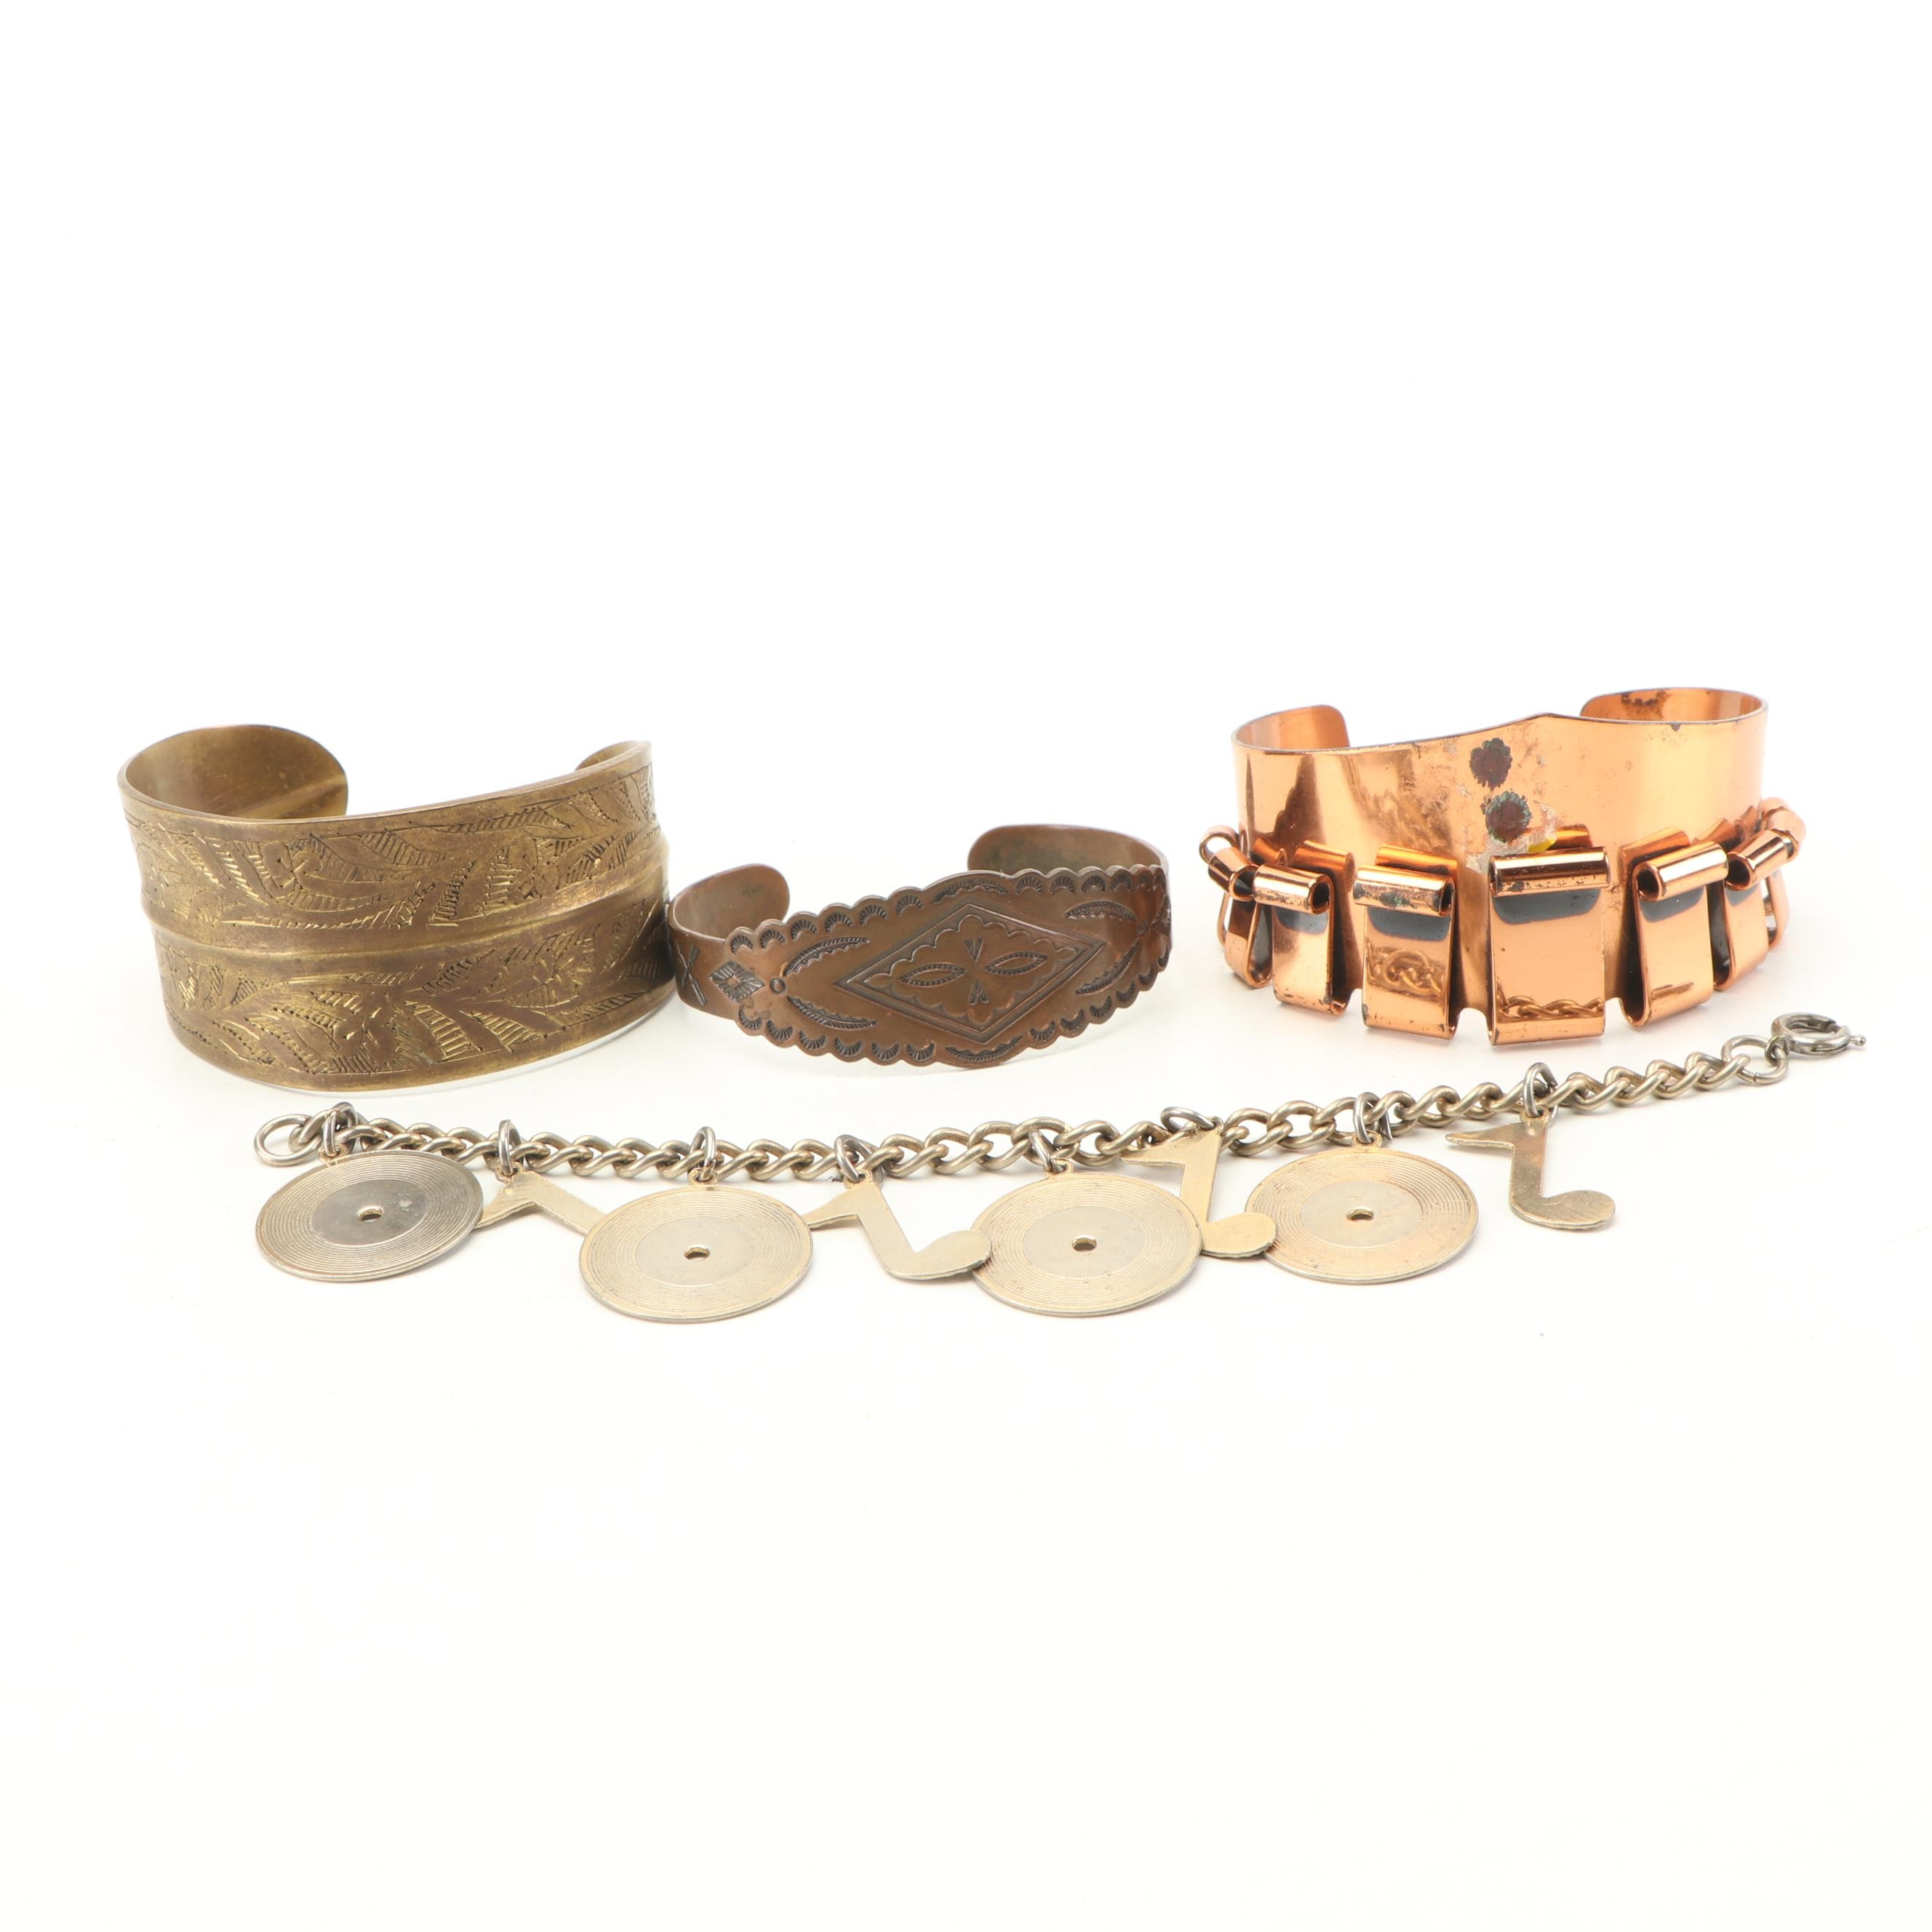 Brass and Copper Cuffs with Metal Charm Bracelet